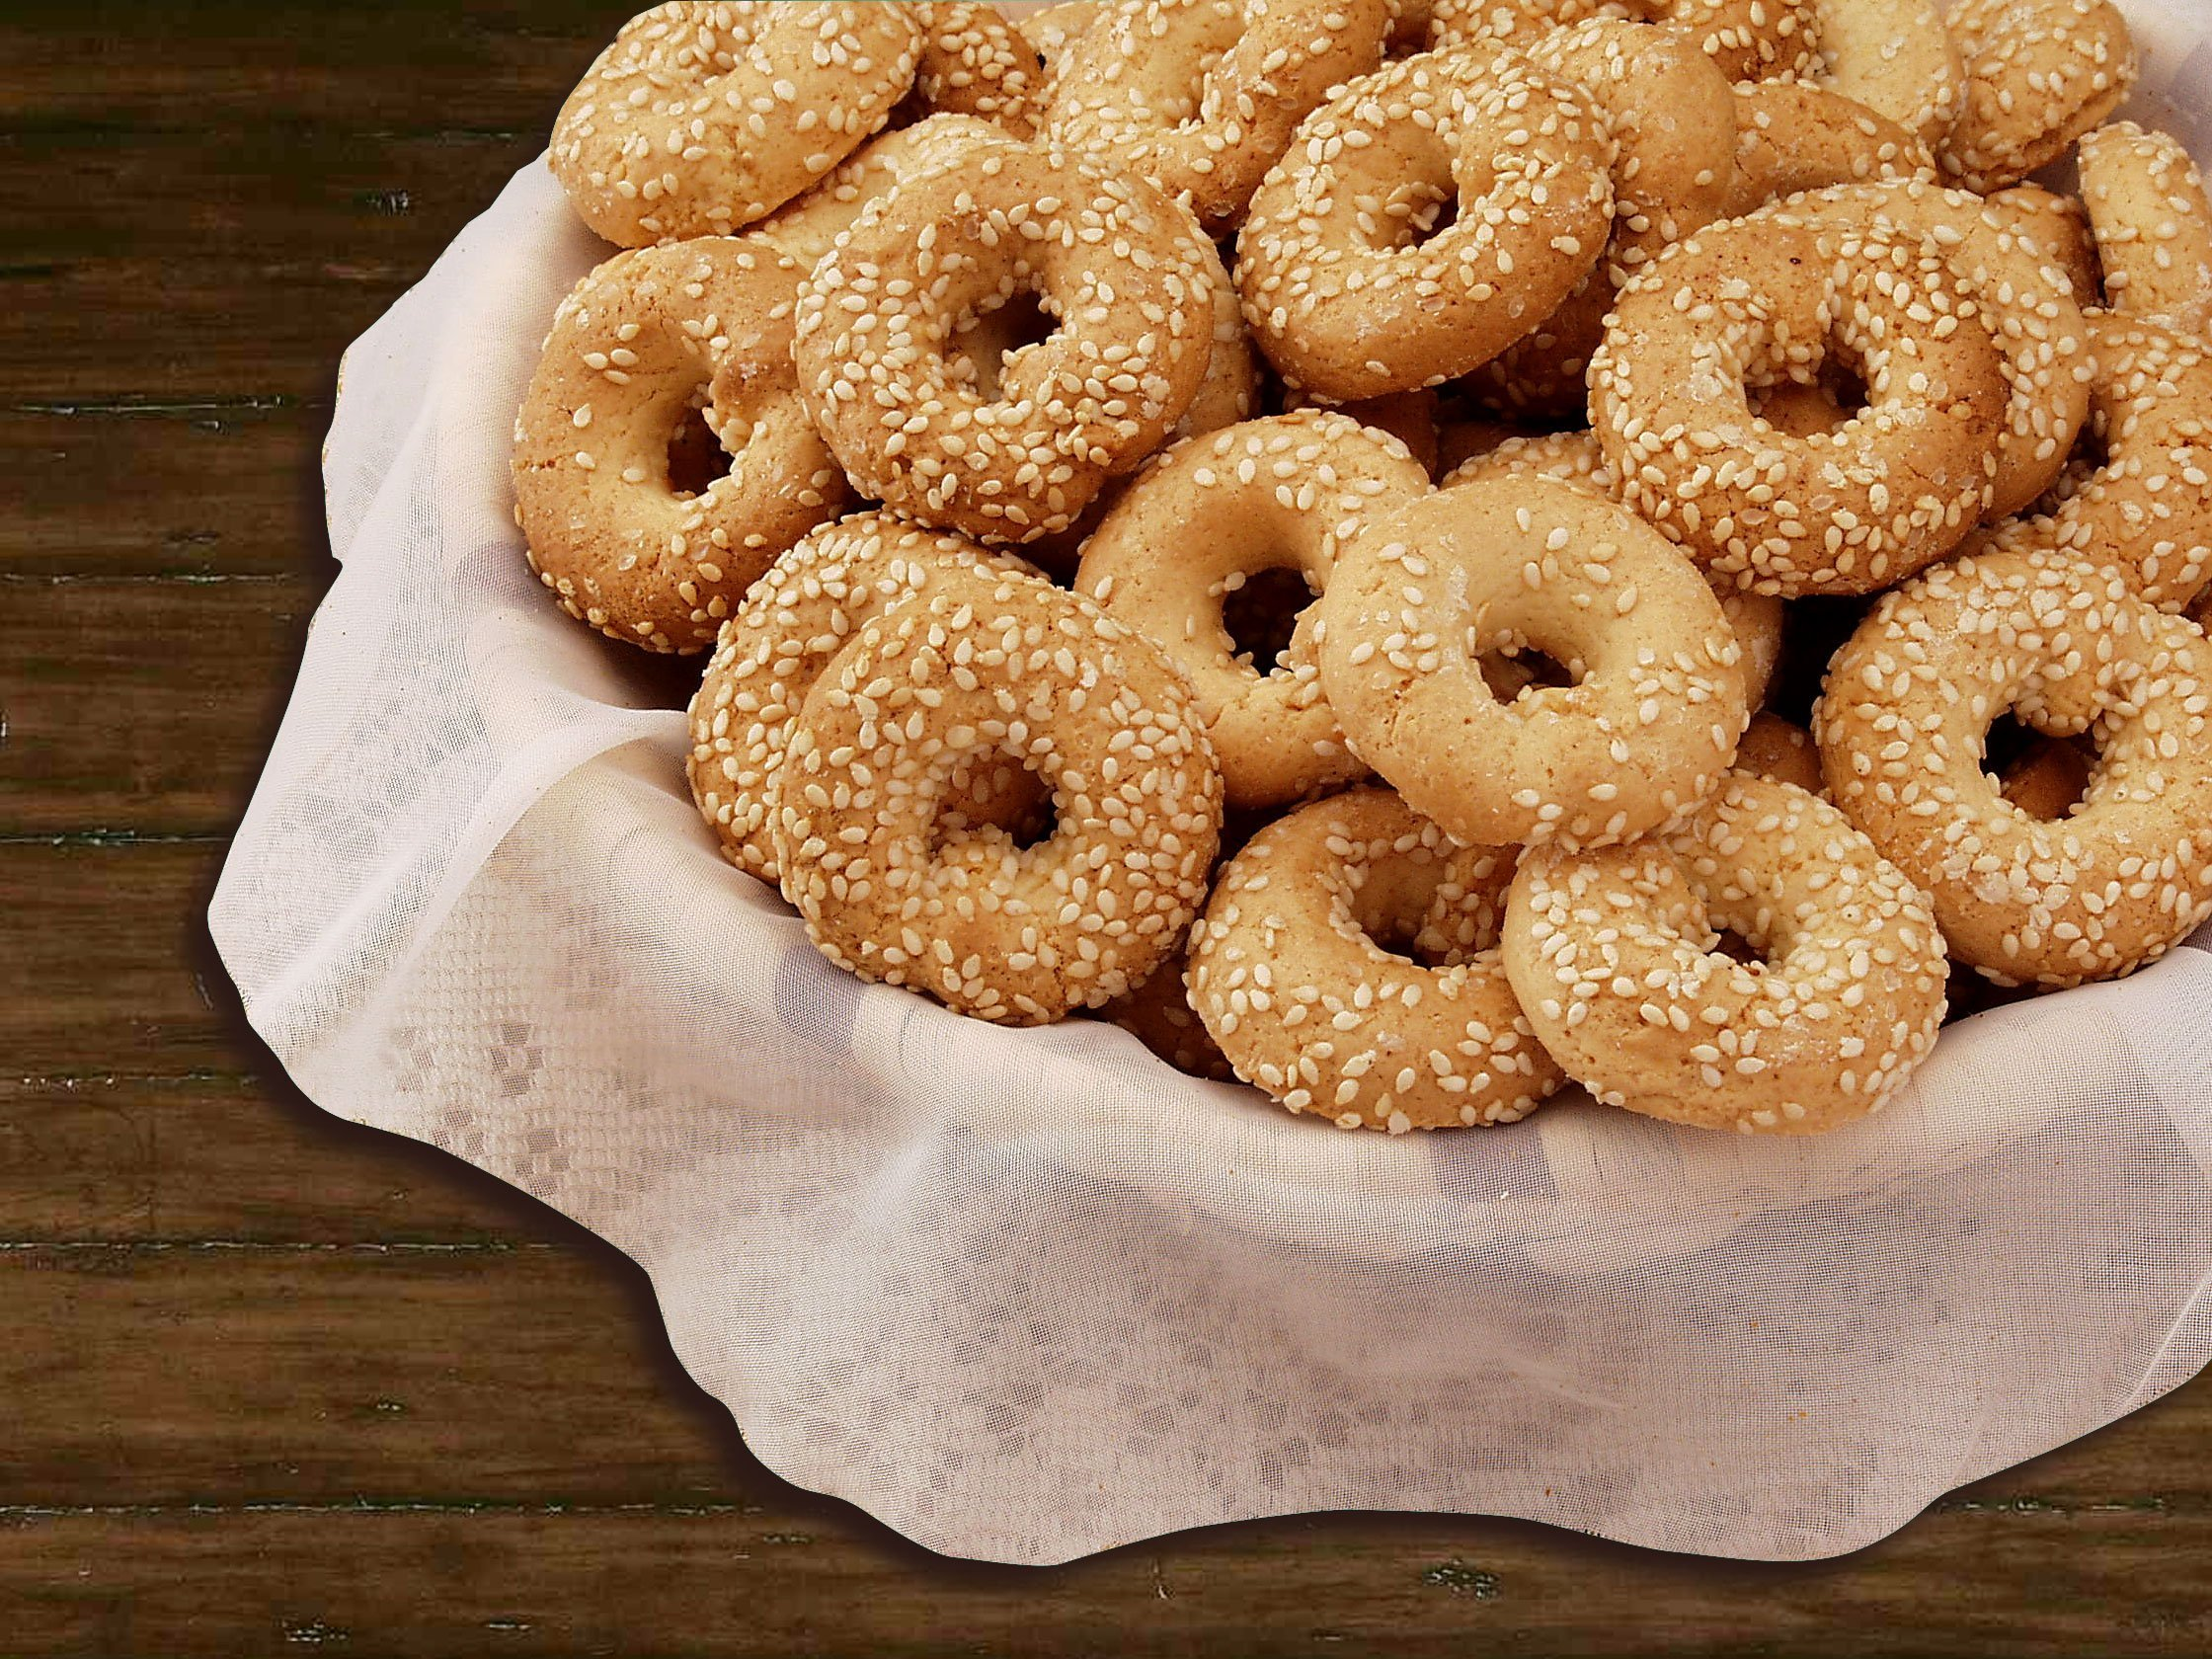 Mediterranean bakery delicacies, Croutons, Flavoured croutons, Breadsticks, Grissini, Crisprolls, Confectionery, Biscuits